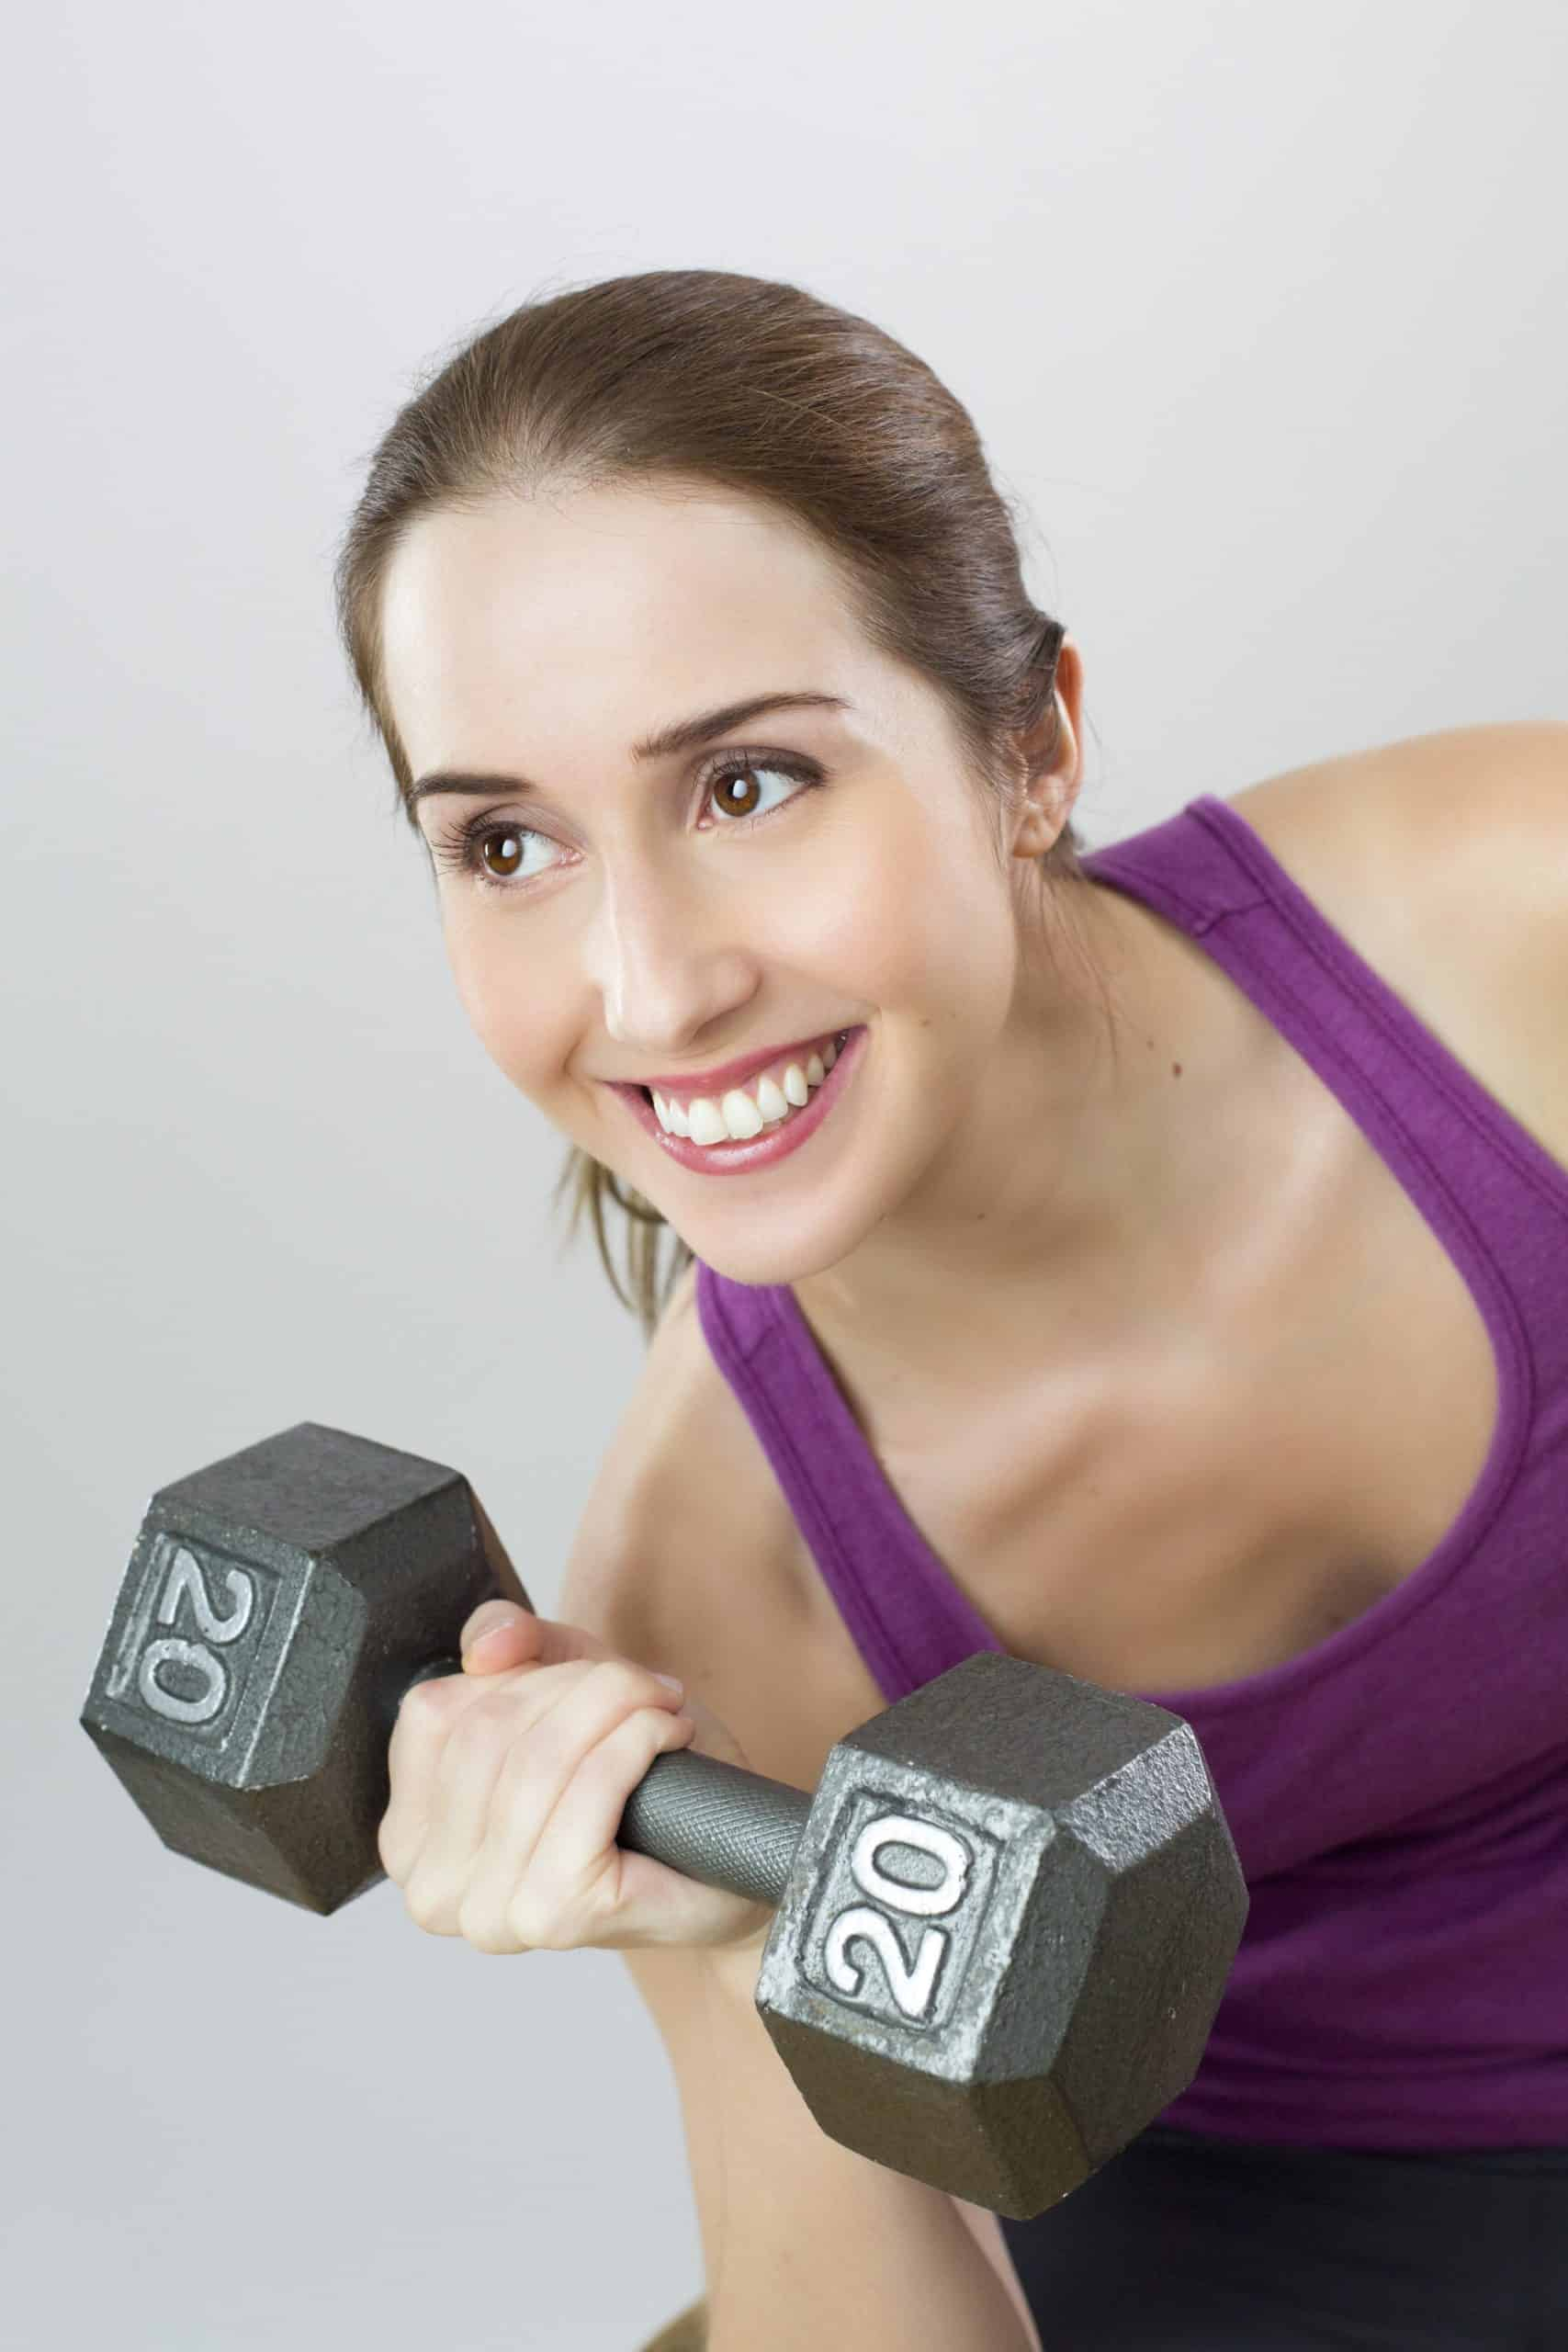 Fitness 101: The Absolute Beginner's Guide To Exercise